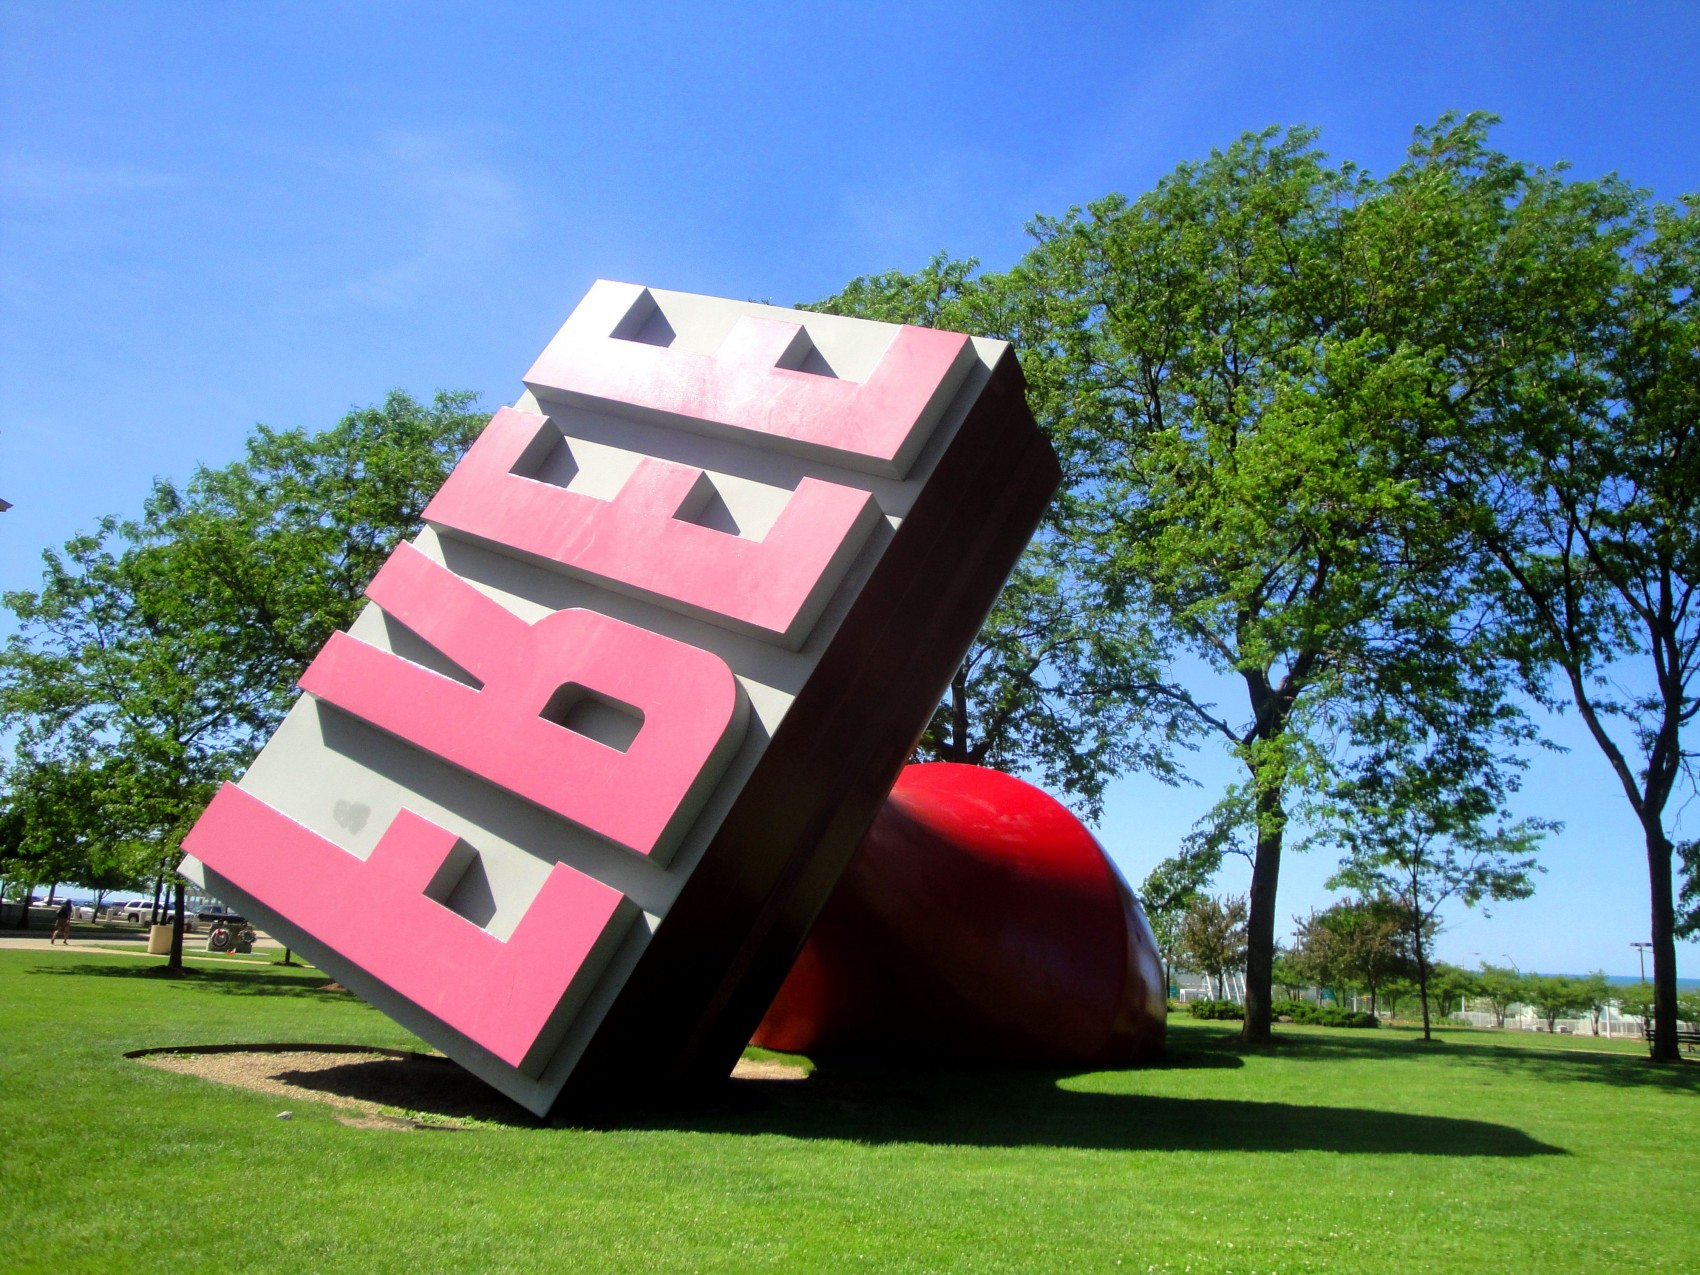 Claes Oldenburg & Coosje van Bruggen Free Stamp, Willard Park, Cleveland, US